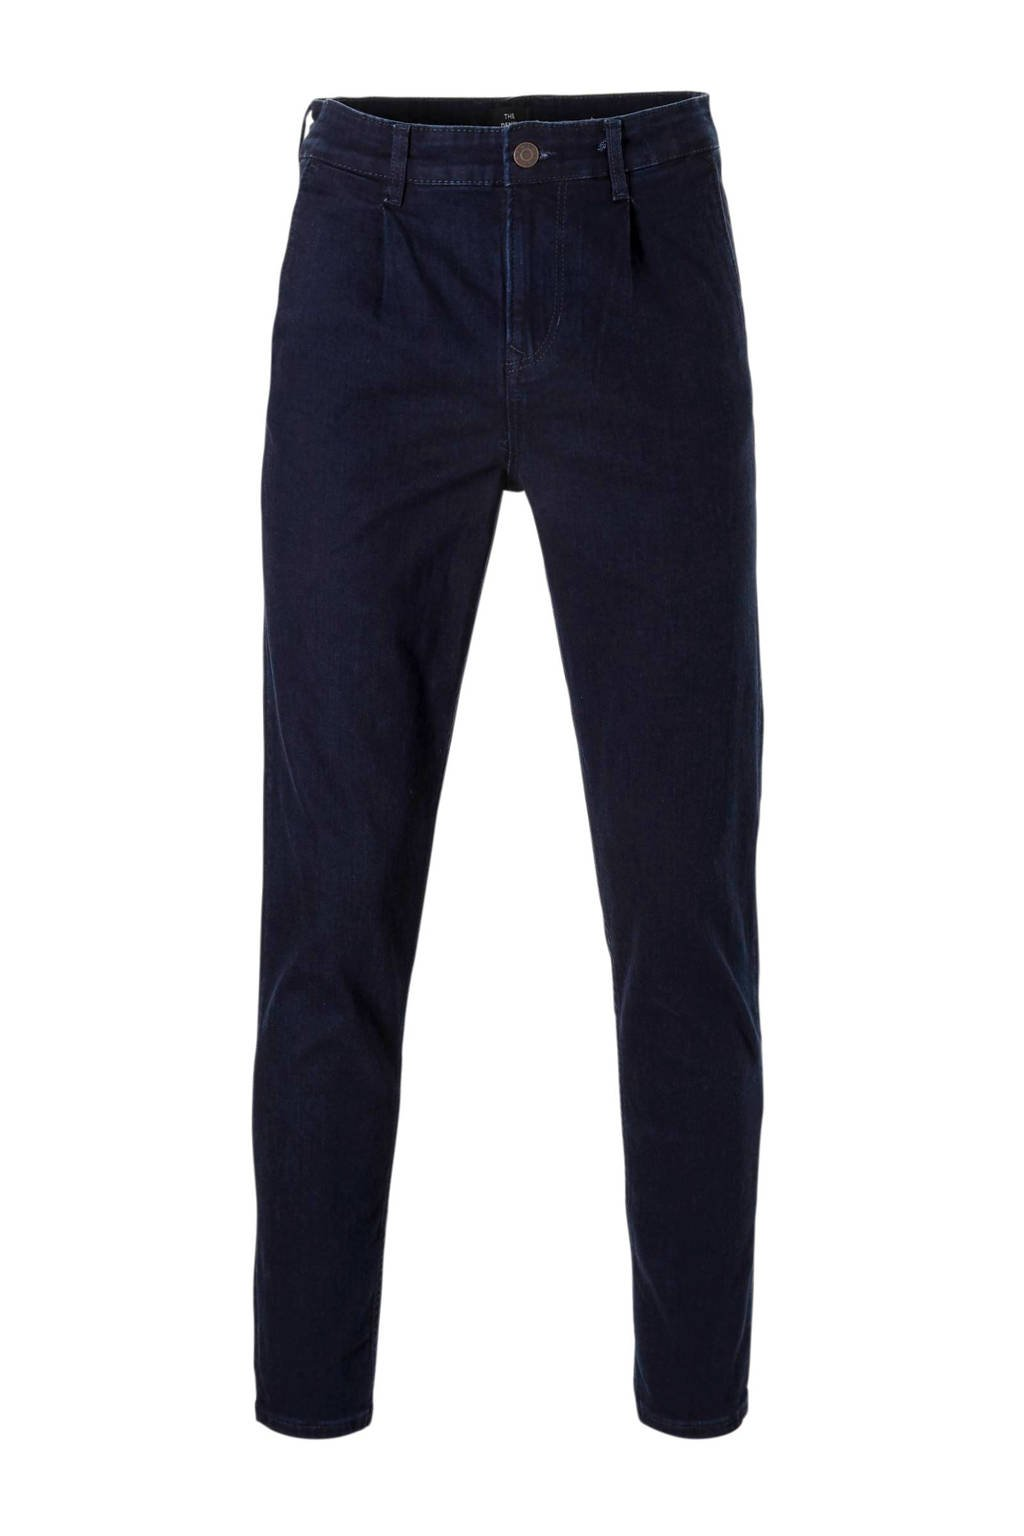 C&A The Denim tapered fit chino, Donkerblauw